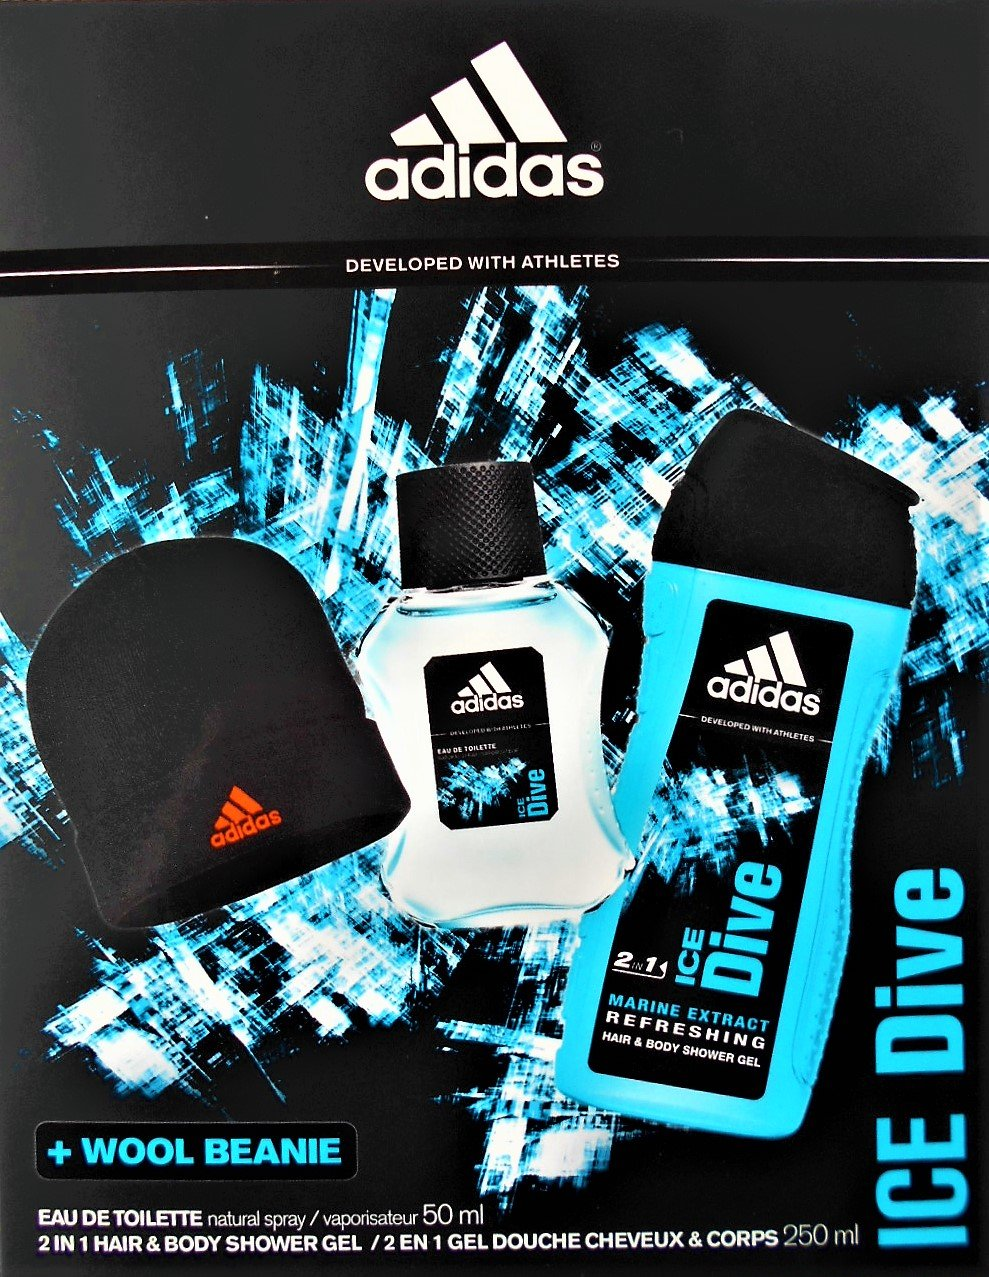 ADIDAS ICE DIVE Eau de Toilette 50ml + 2in1 Hair & Body Shower Gel + Wool Beanie Coty